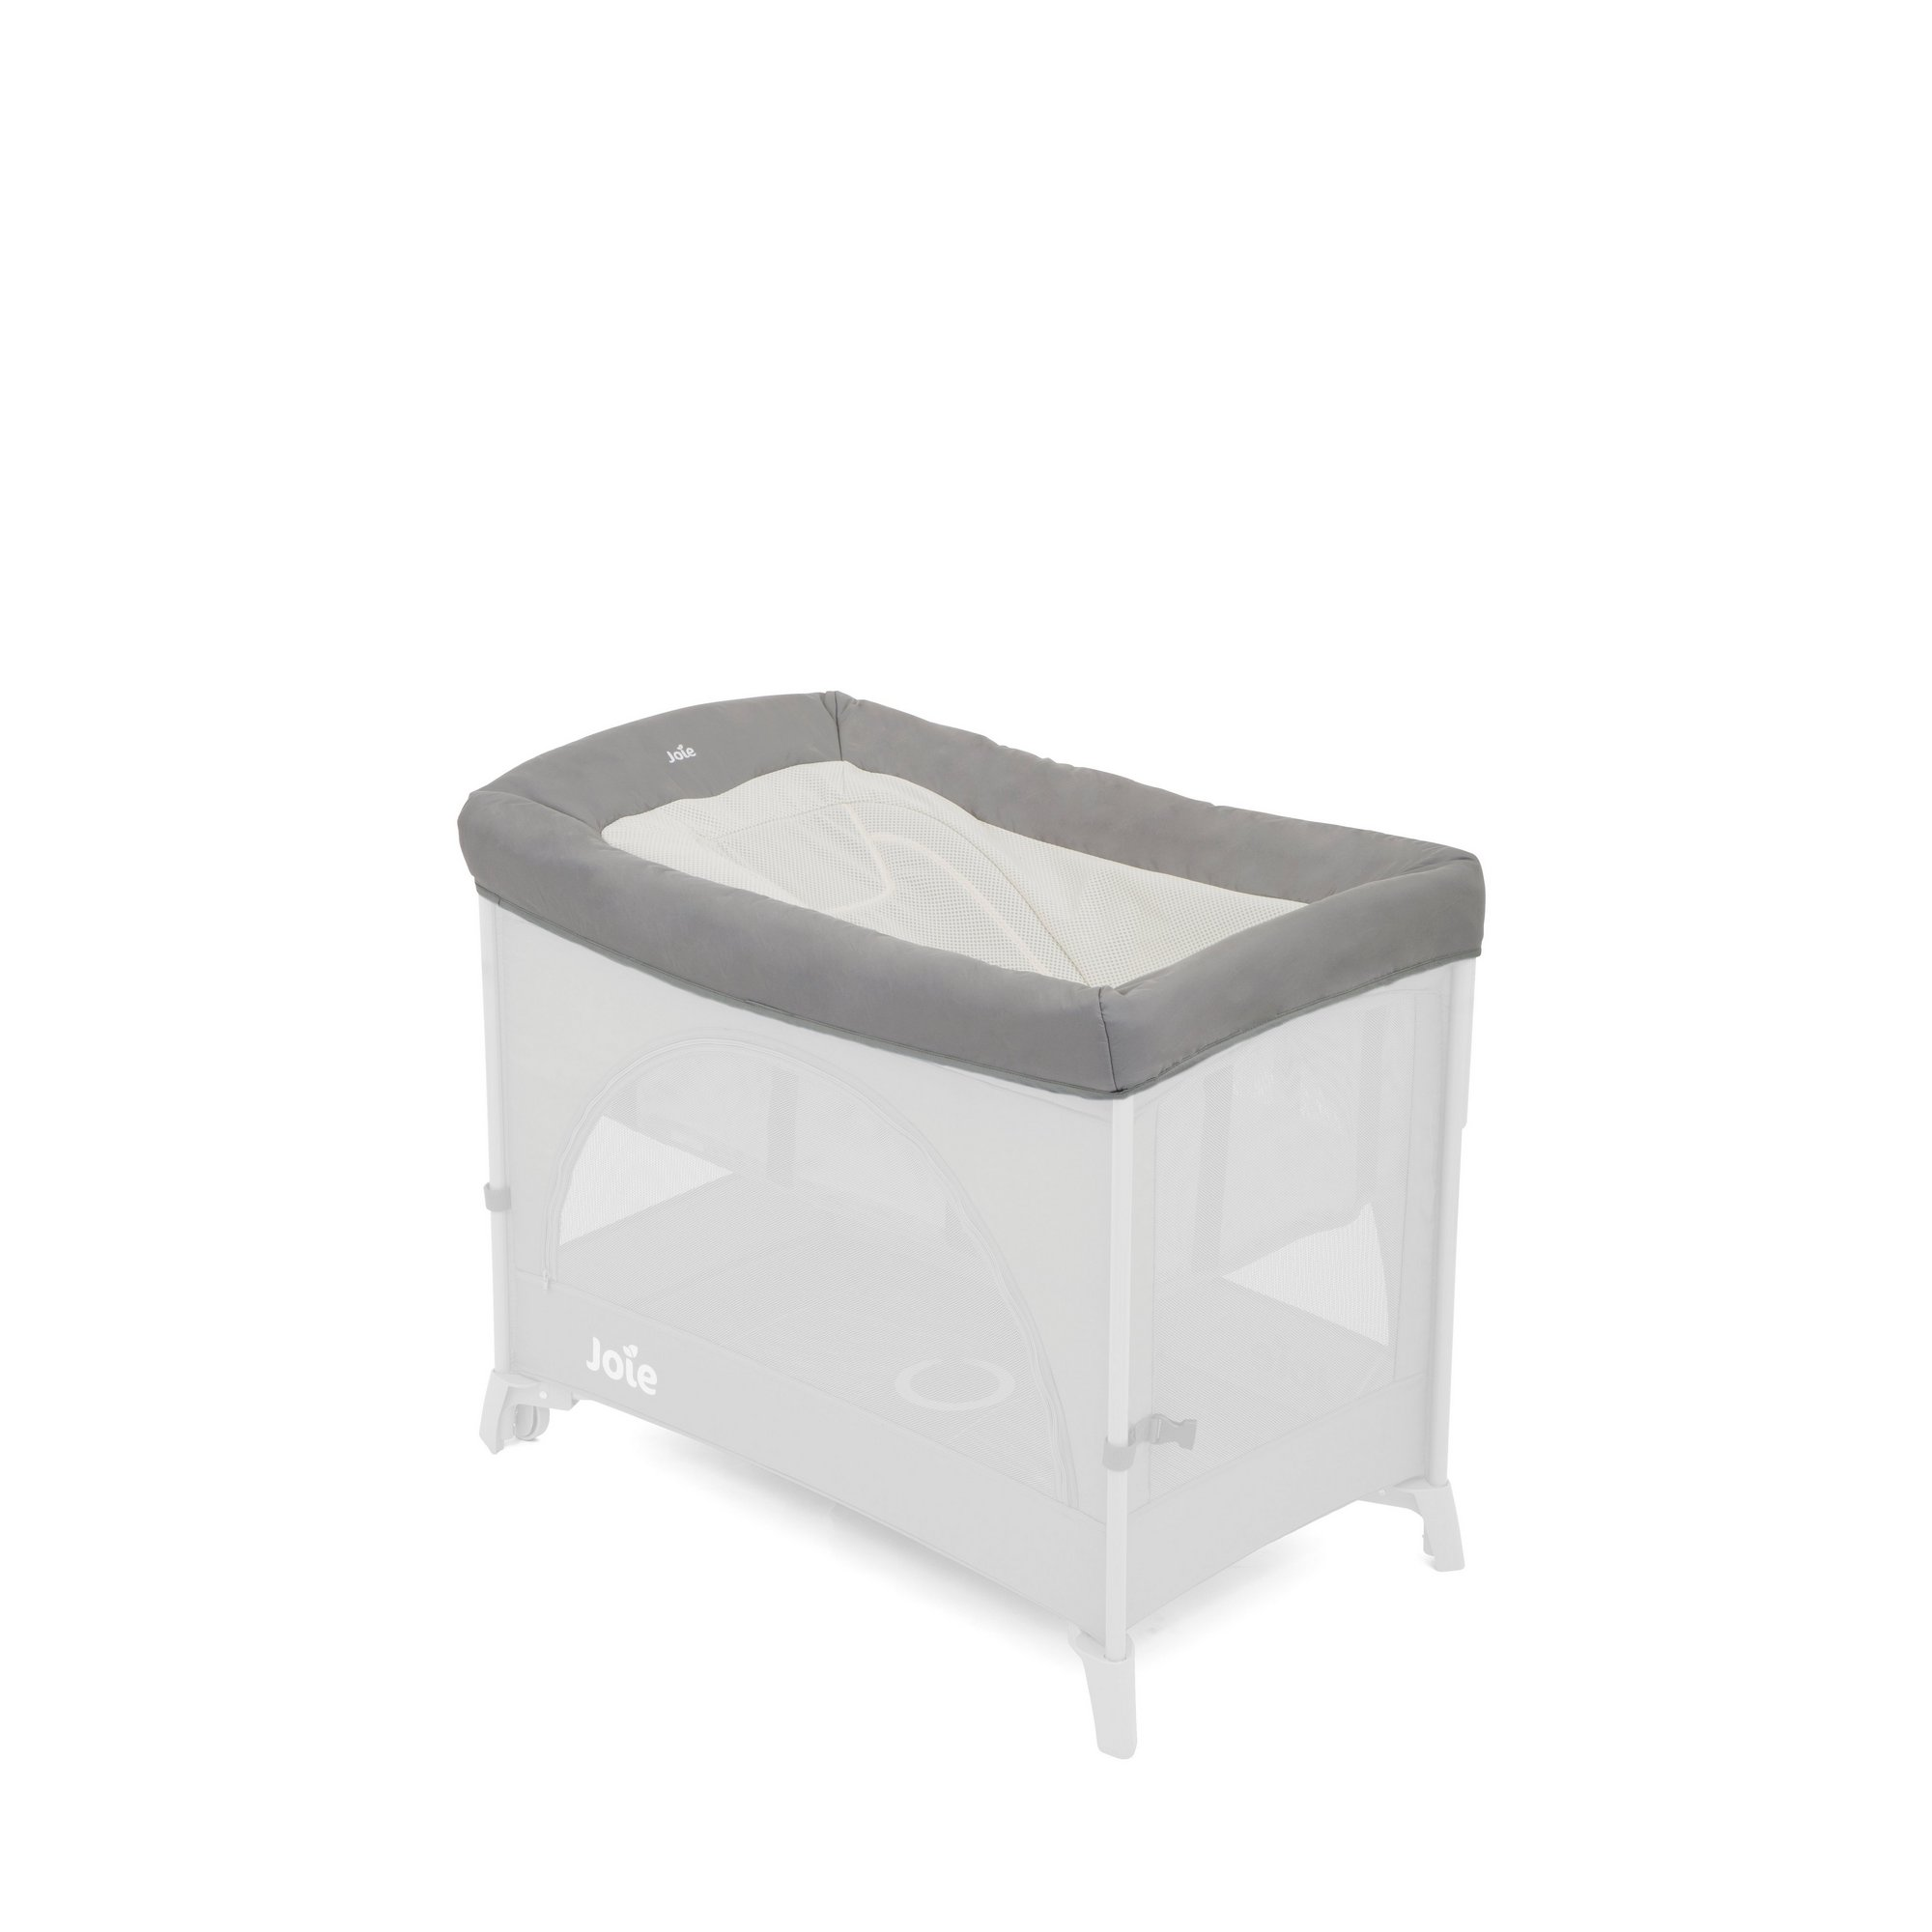 Image of Joie Daydreamer Travel Cot Accessory - Foggy Grey